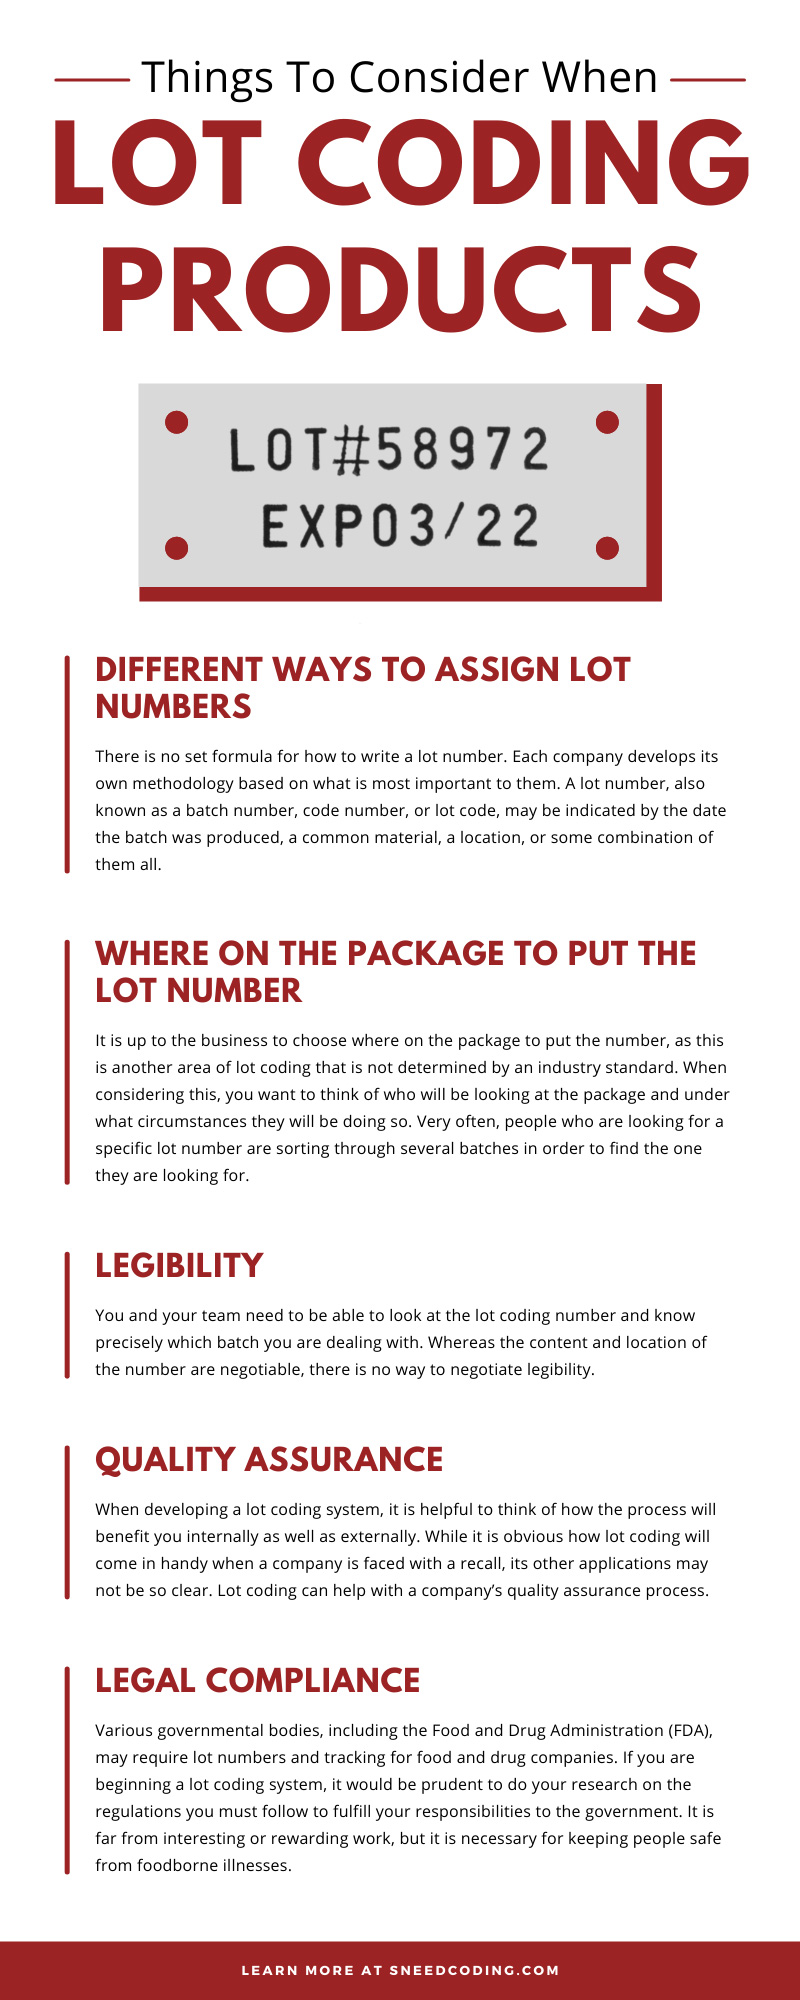 Things To Consider When Lot Coding Products